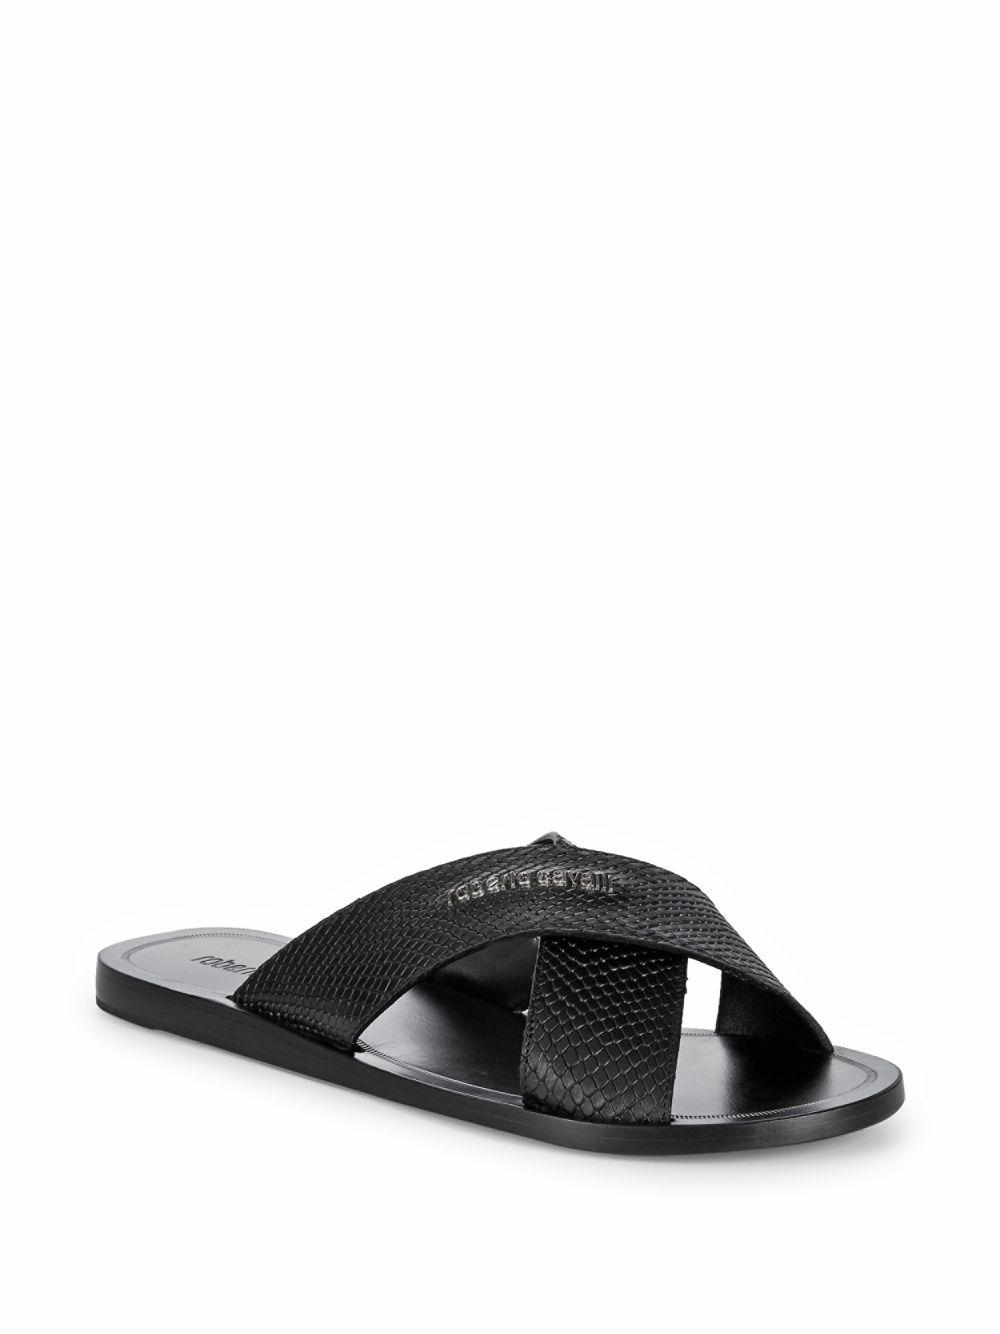 3f0ca1ab14 Lyst - Roberto Cavalli Cross Band Leather Sandals in Black for Men ...